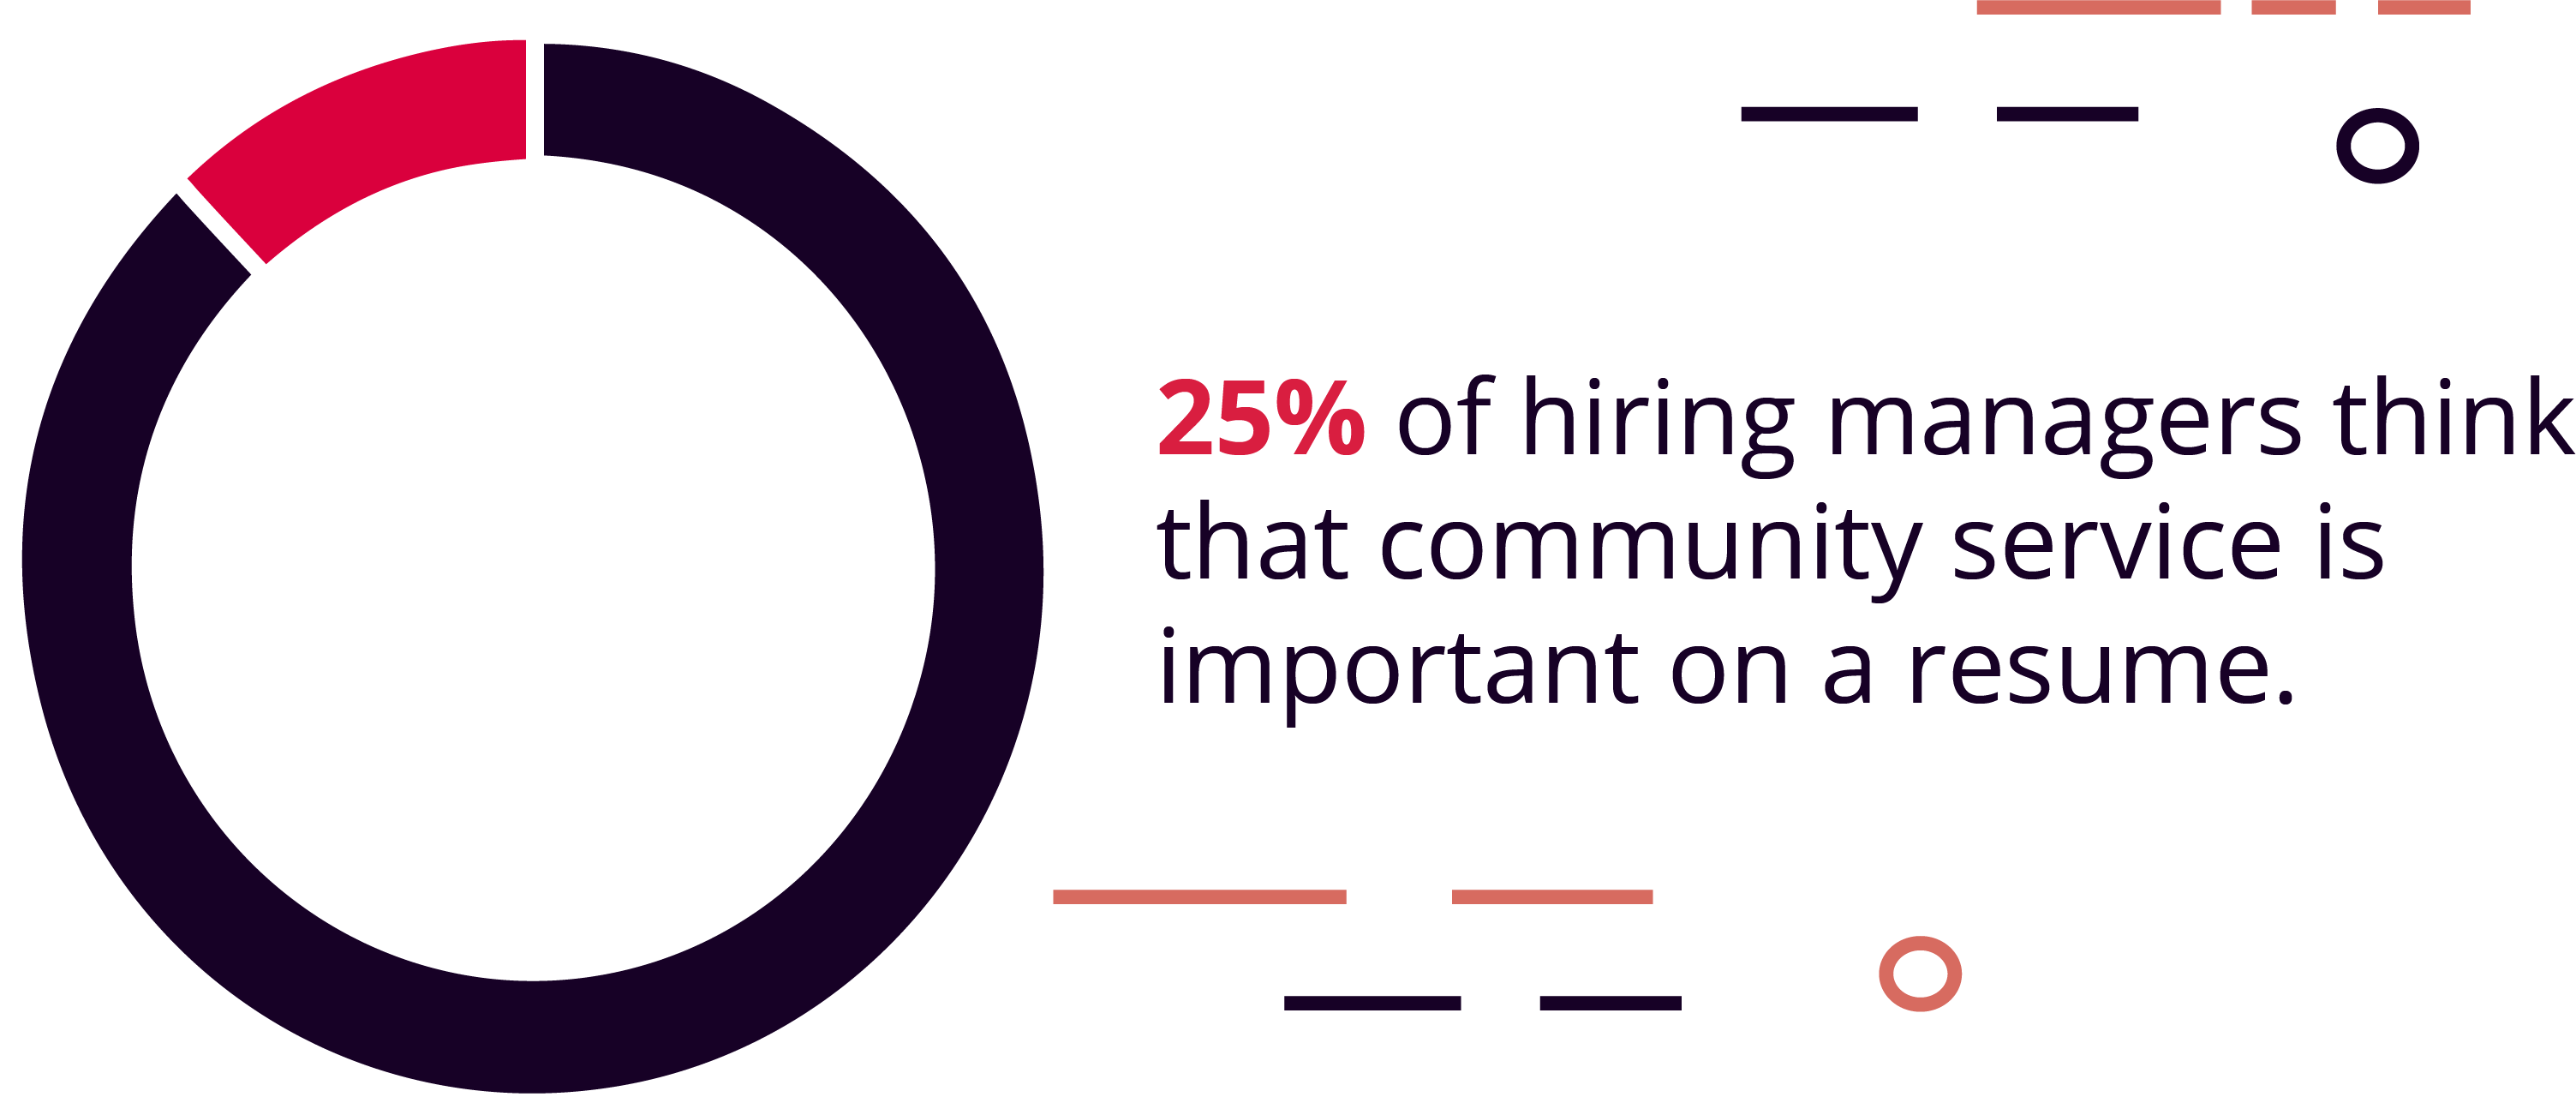 25% of Hiring Managers Think Community Service Is Important on a Resume